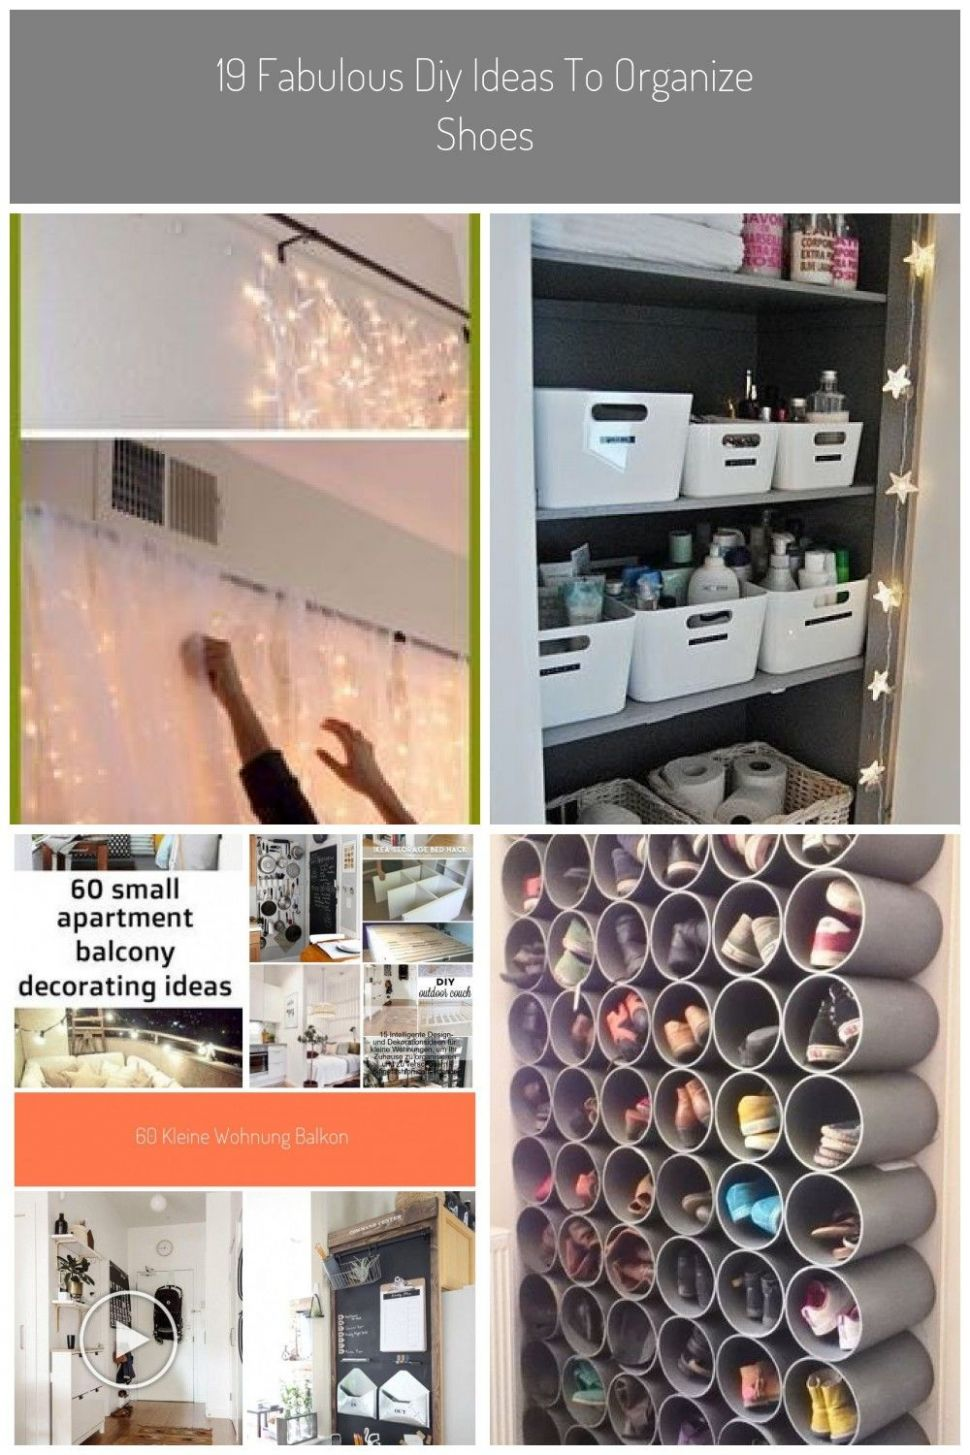 Organizing Ideas For Living In An Apartment Apartment Decorate ..